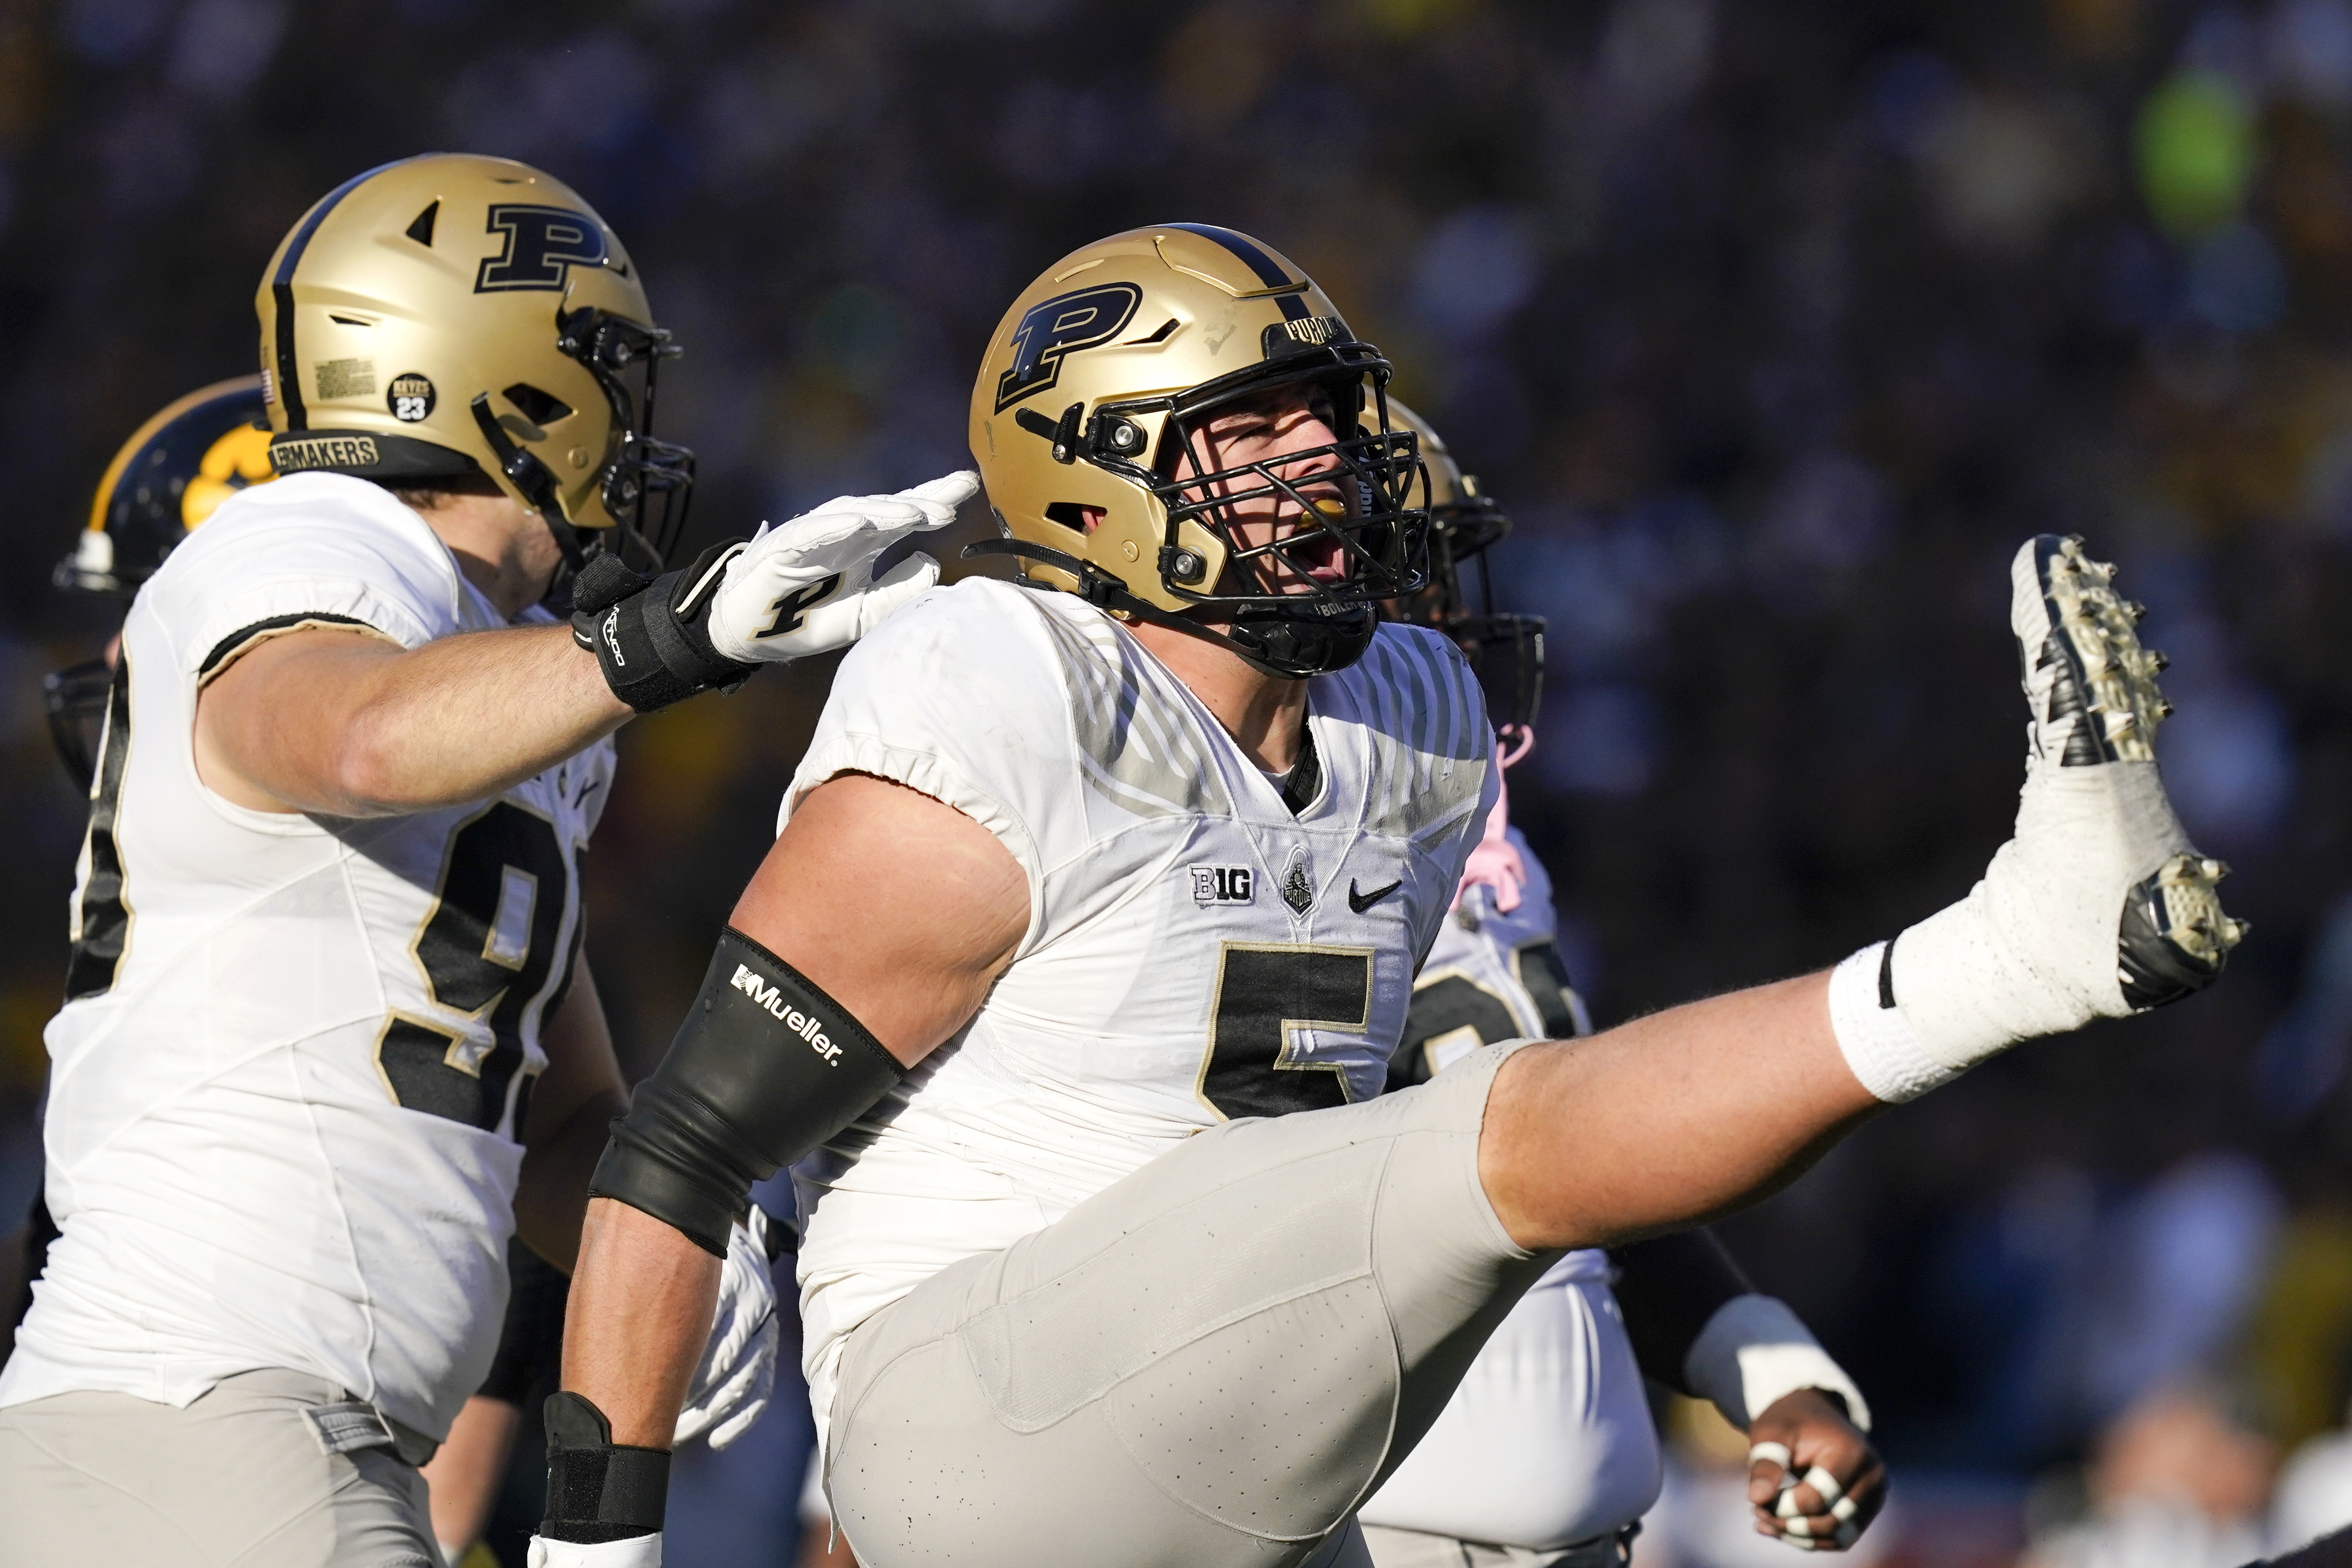 Purdue defensive end George Karlaftis (5) celebrates after a sack during the second half of Saturday's win over Iowa.